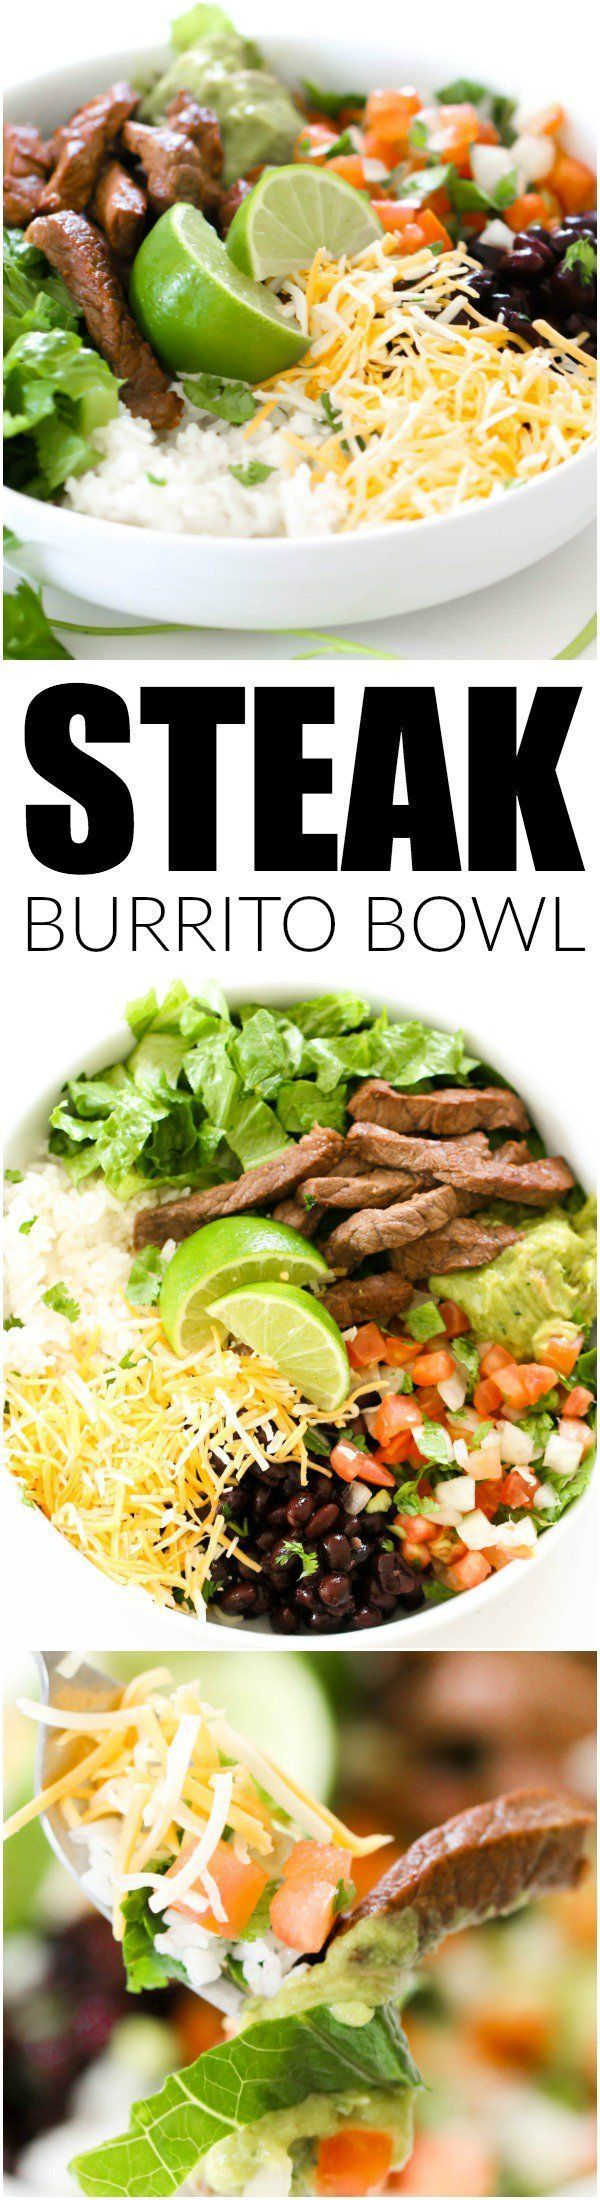 Steak burrito bowl from for Bar food ideas recipes